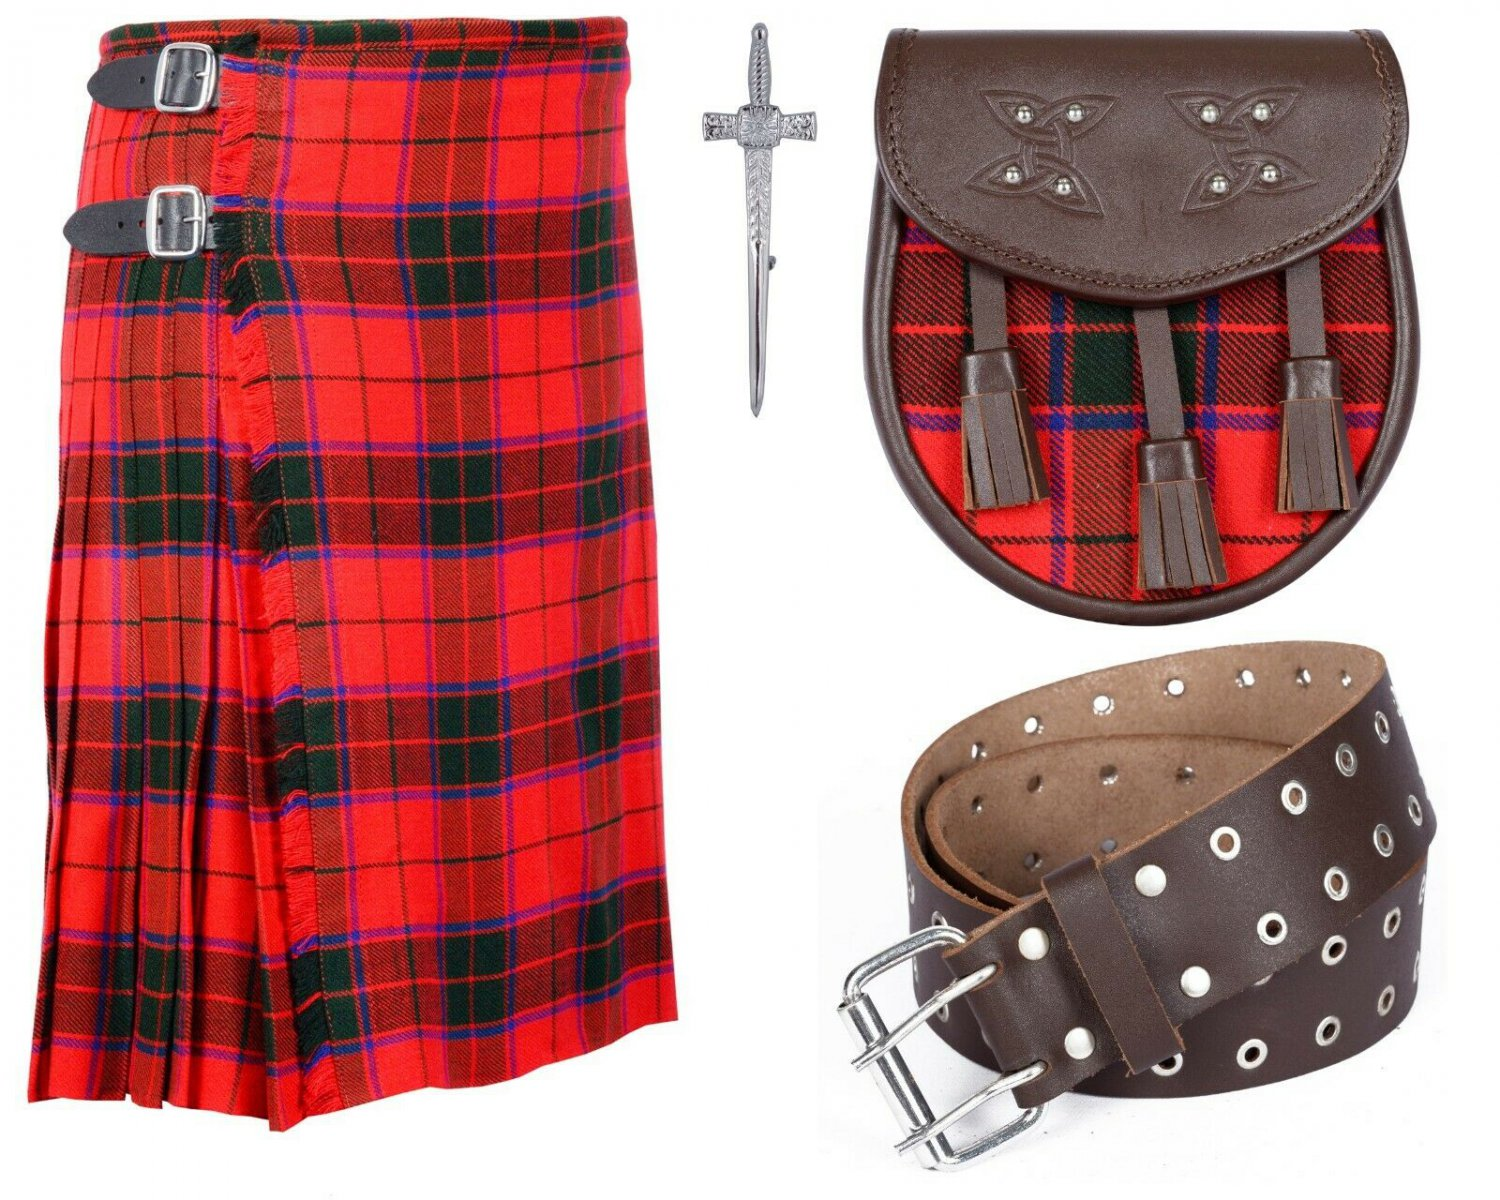 50 Inches Waist 8 Yard Traditional Scottish Rose Tartan Kilt with Leather Belt and Sporran